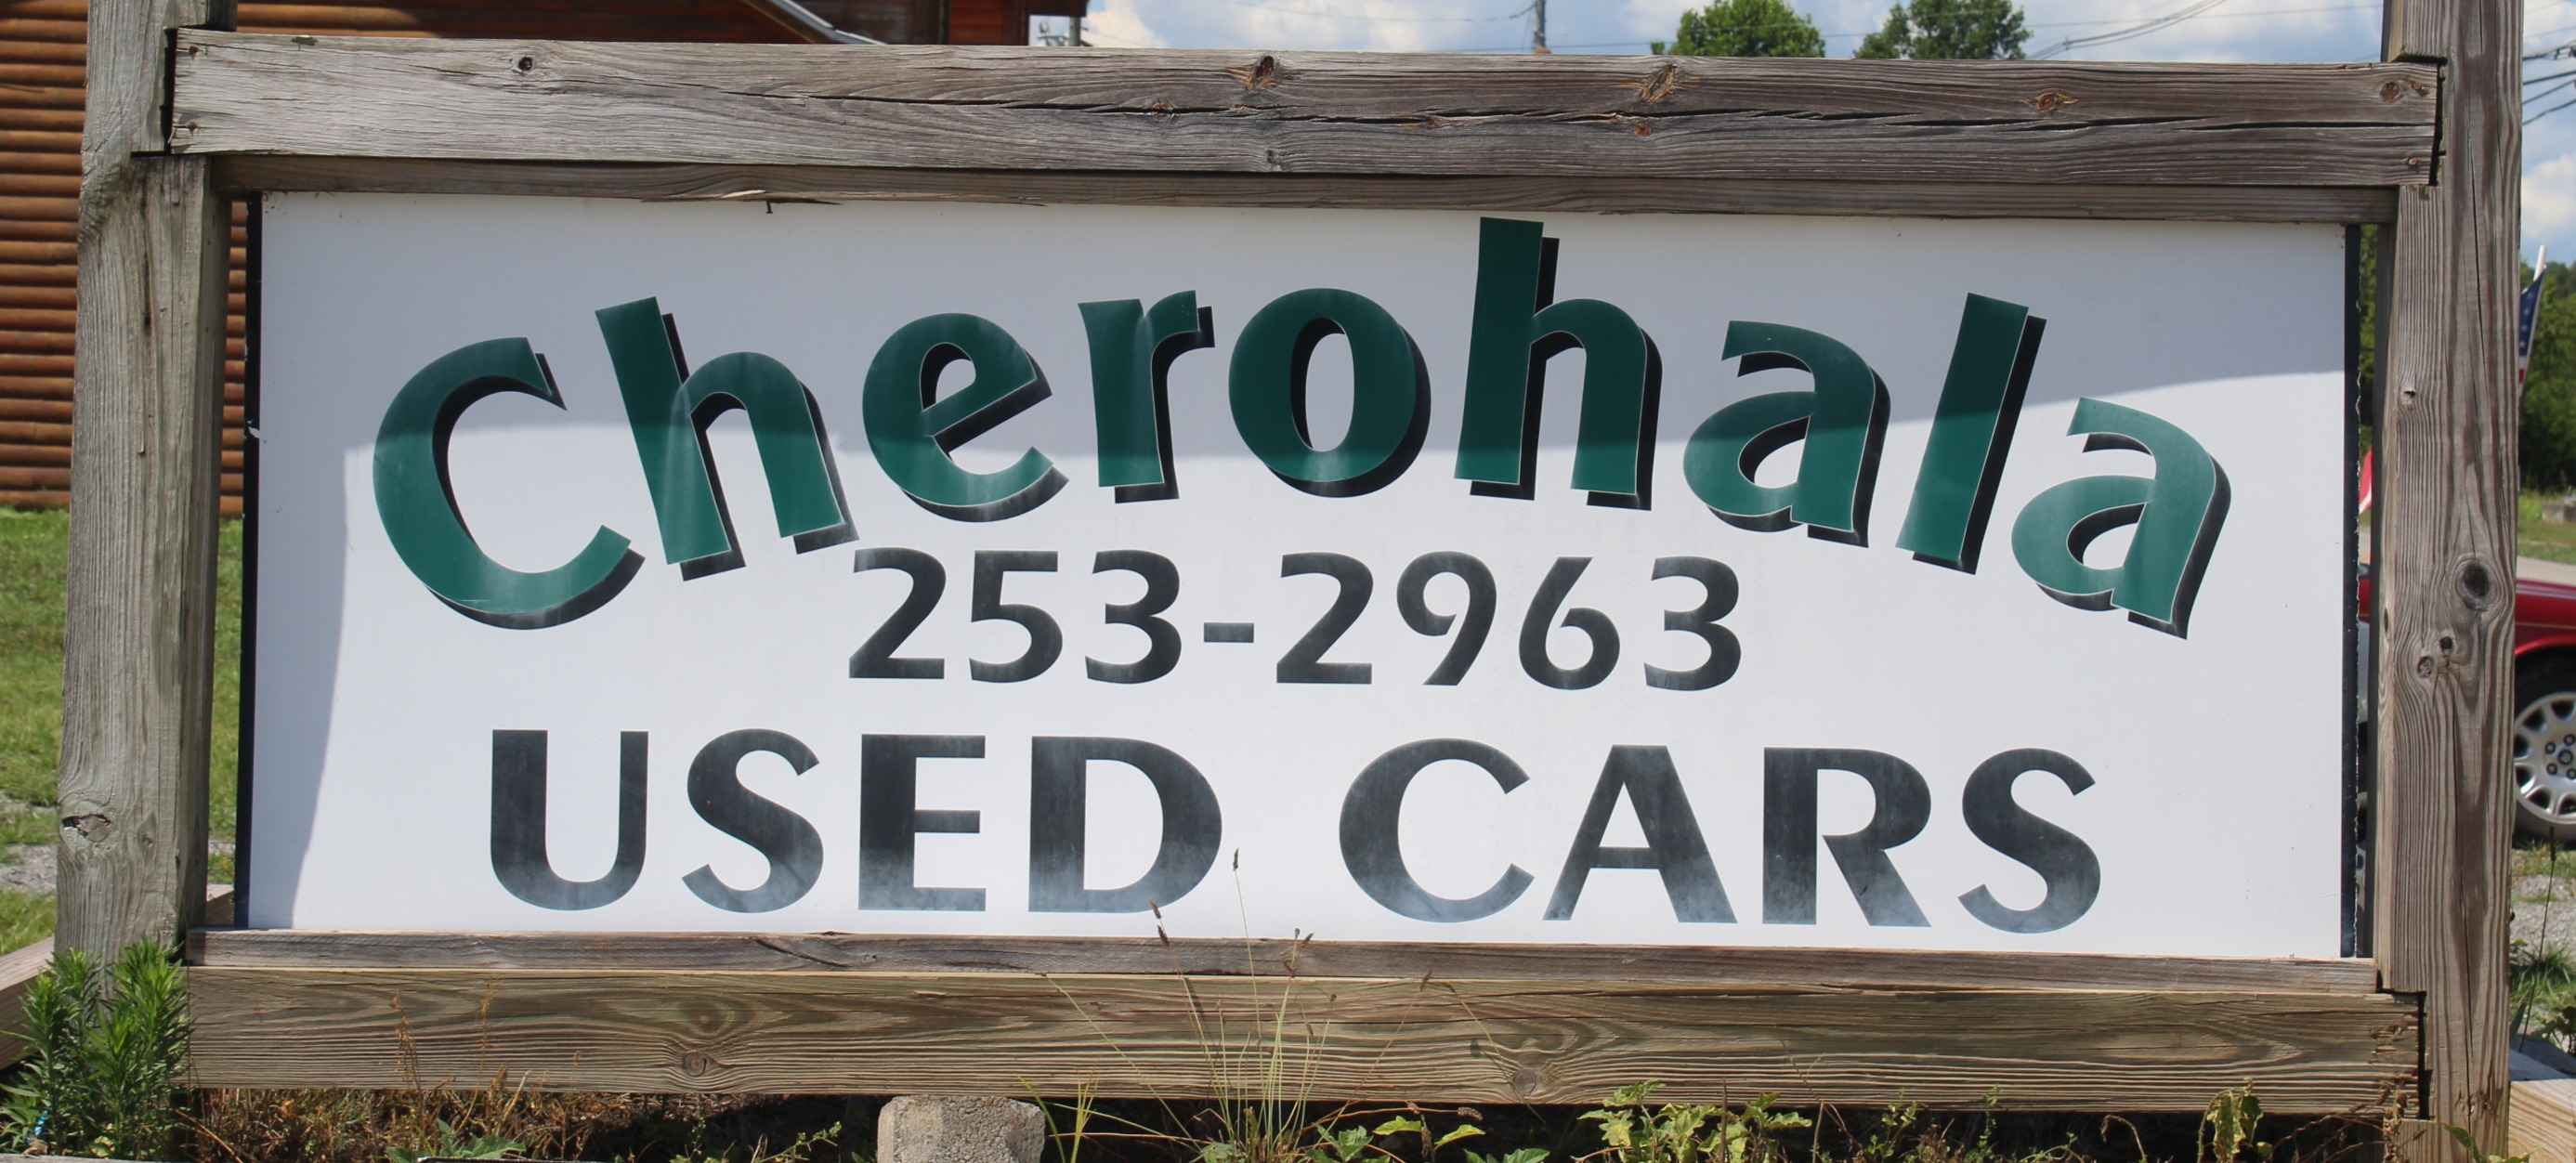 Cherohala Used Cars